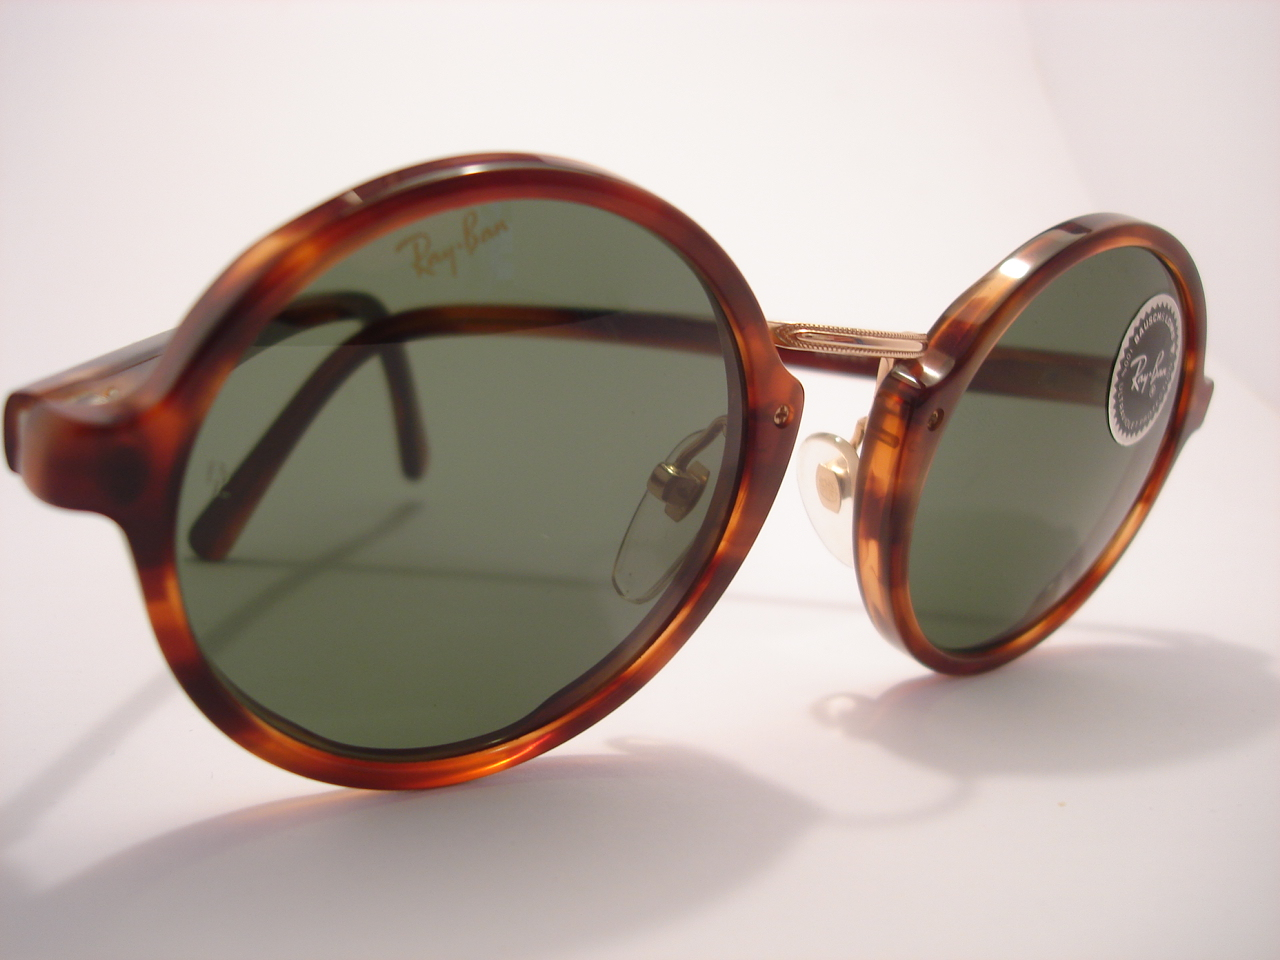 ray ban sunglasses made in usa  theothersideofthepillow: vintage RAY BAN by BAUSCH \u0026 LOMB round ...